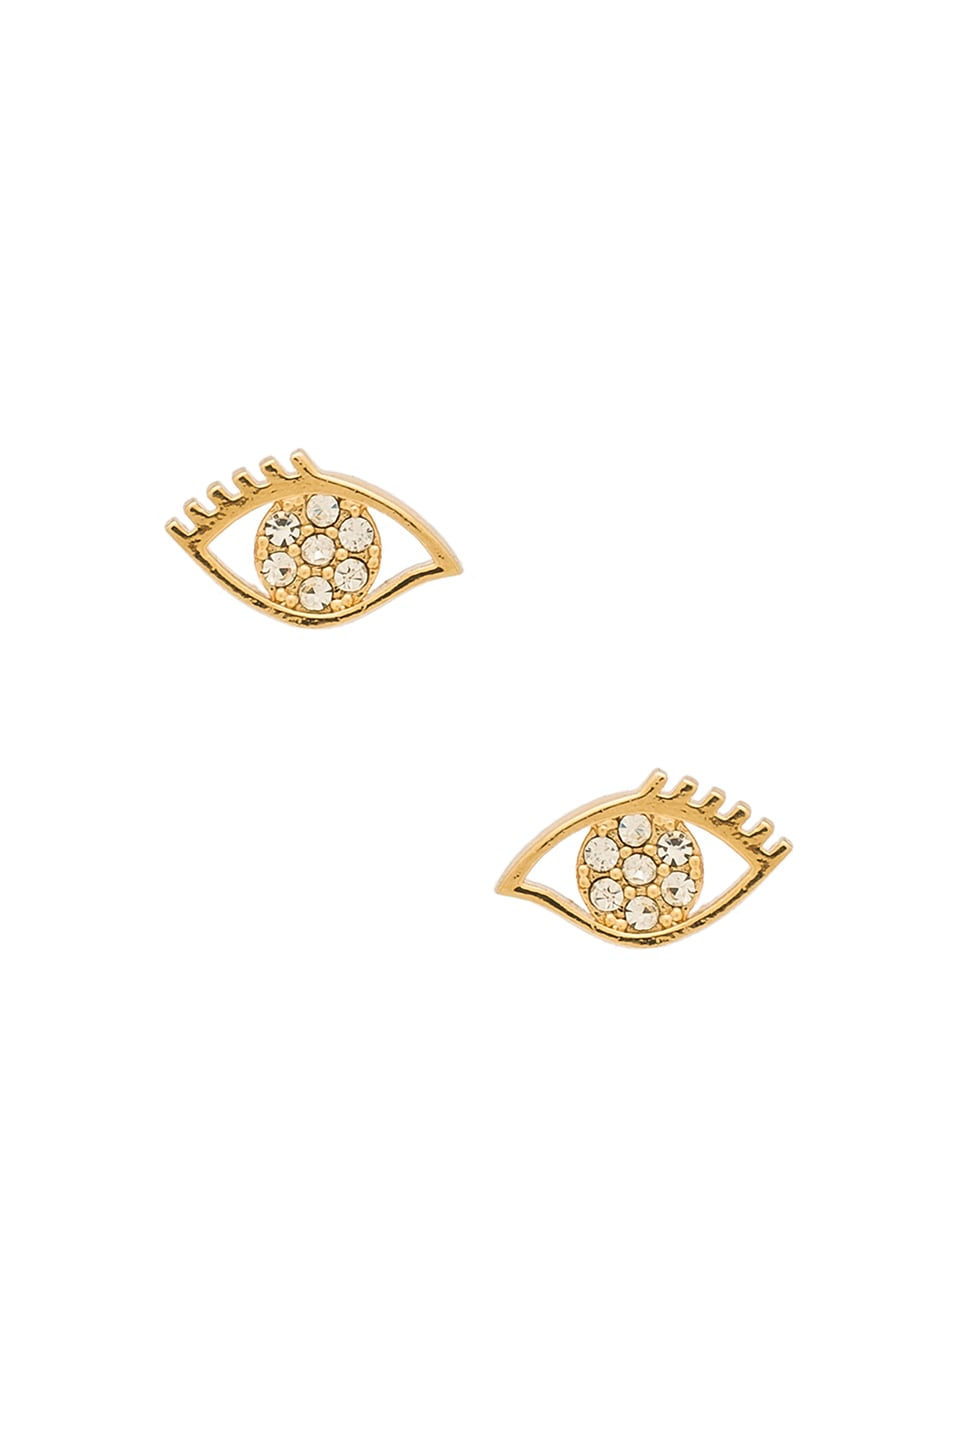 Rebecca Minkoff Evil Eye Stud Earrings in Gold & Crystal